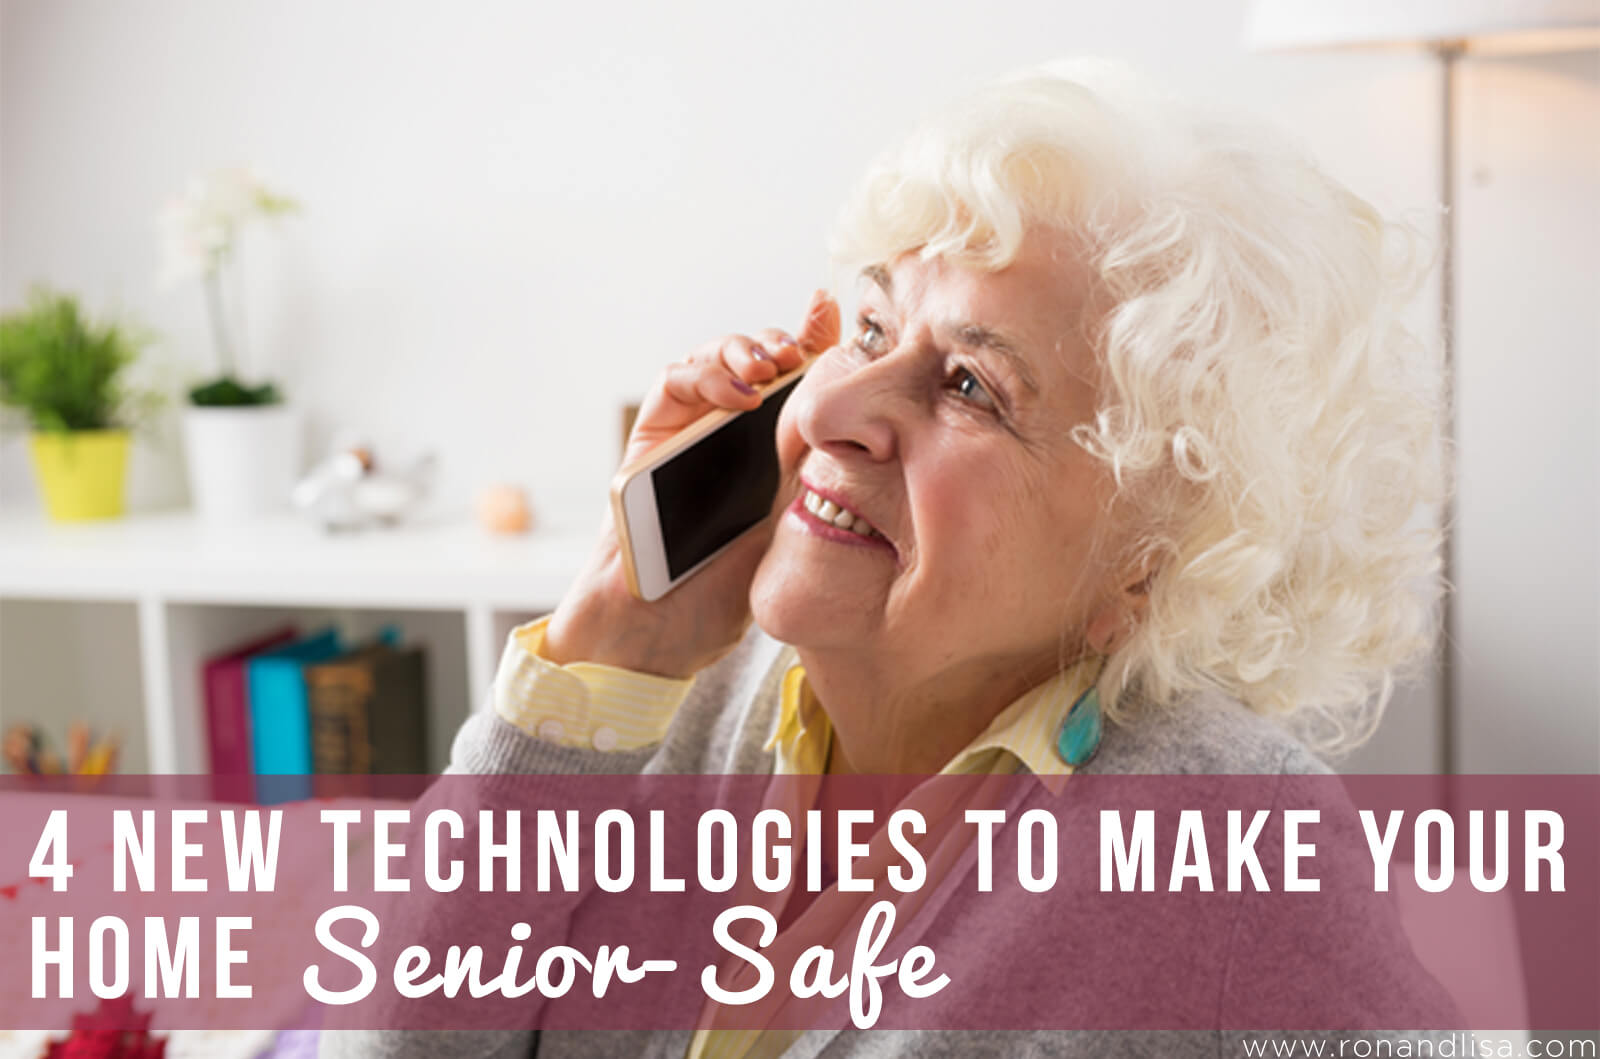 4 New Technologies to Make Your Home Senior-Safe